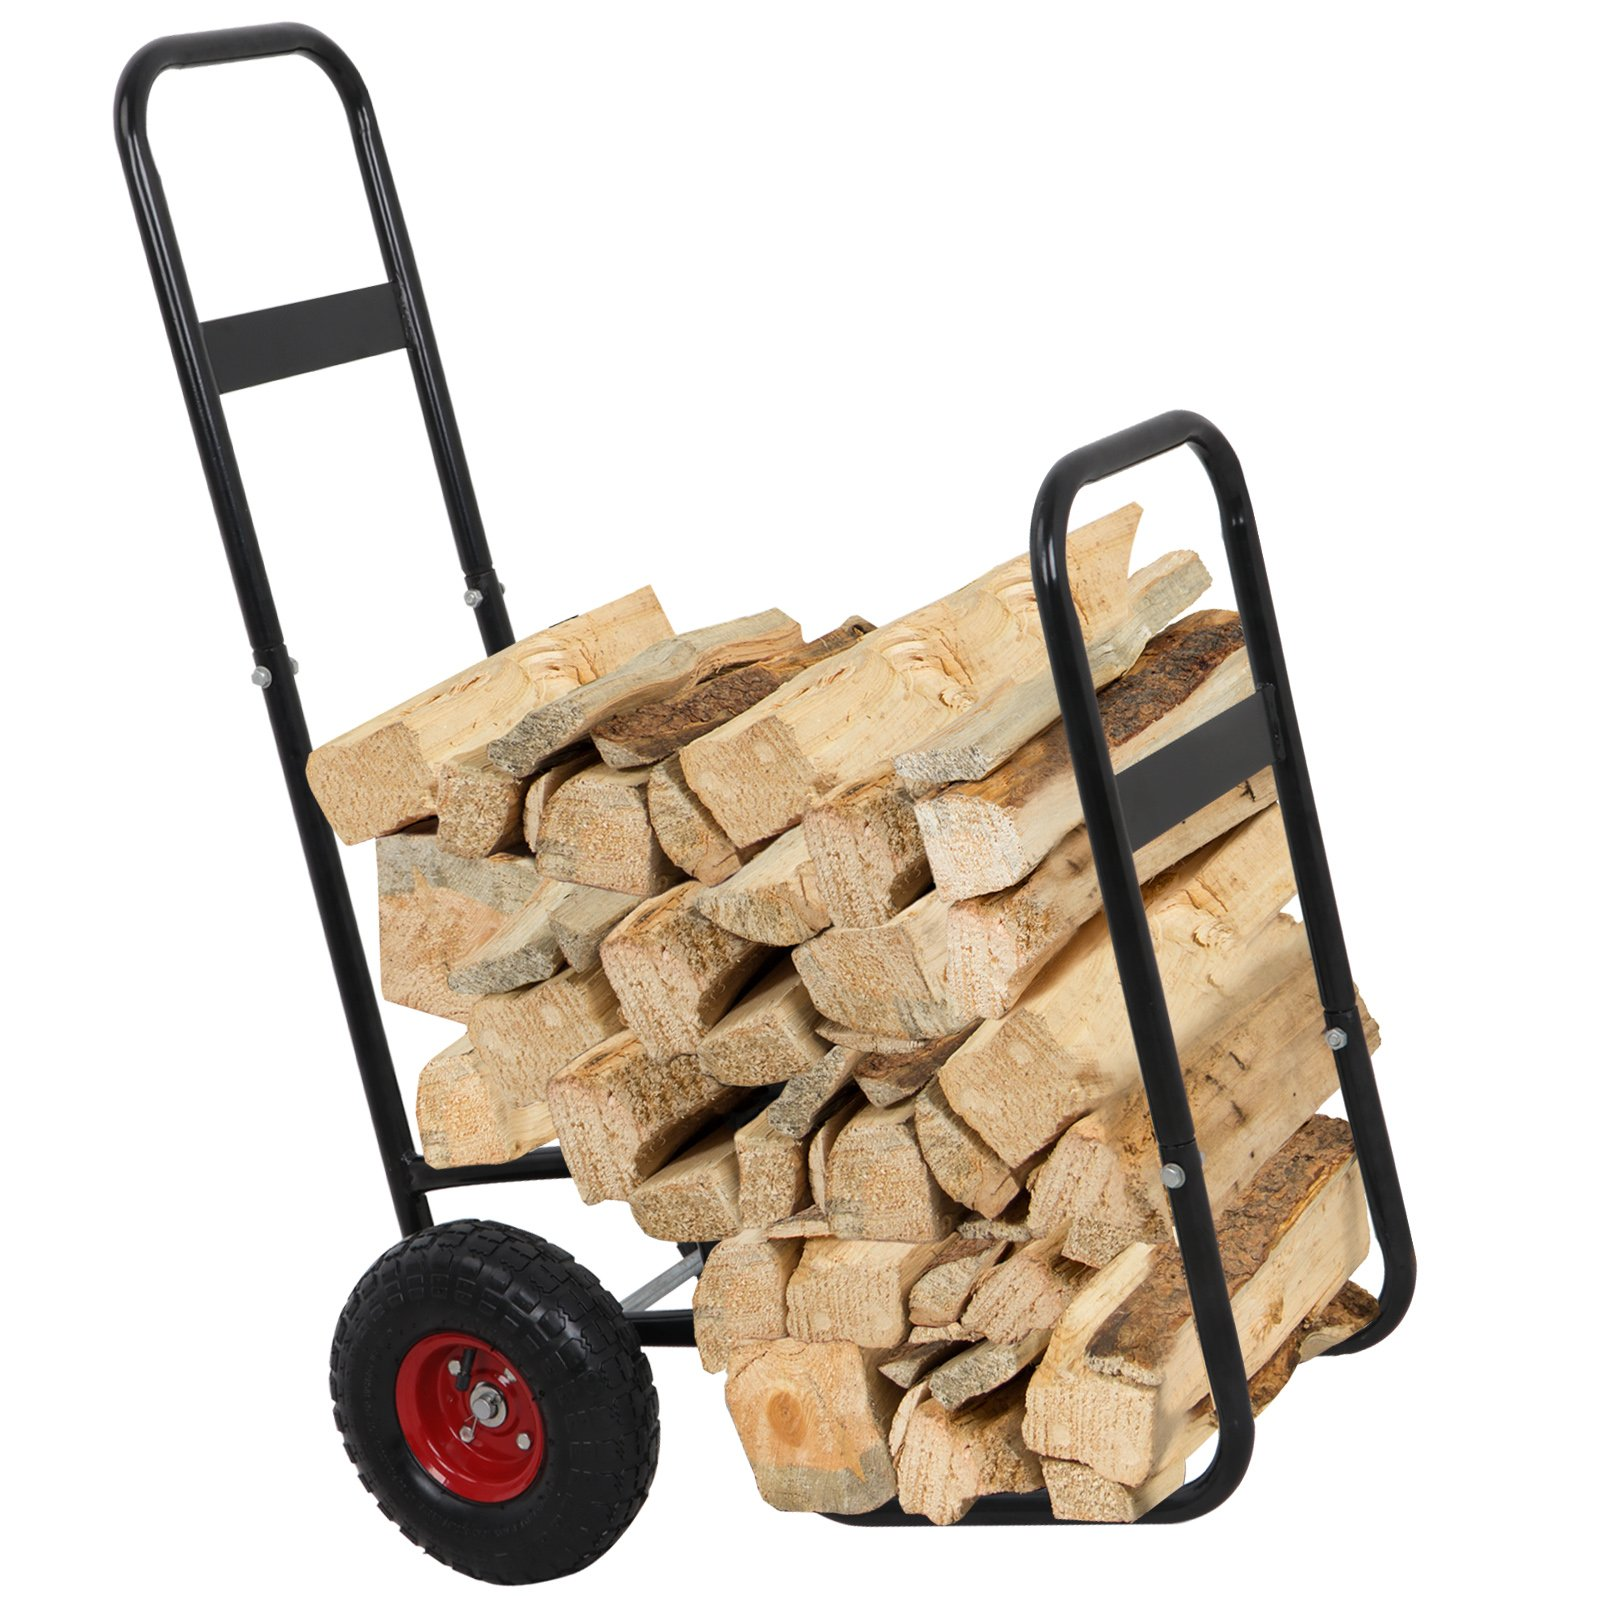 LEMY Firewood Log Cart Log Carrier Fireplace Wood Mover Hauler Rack Caddy Dolly Rolling Fire Storage Cart Trolley Black by LEMY